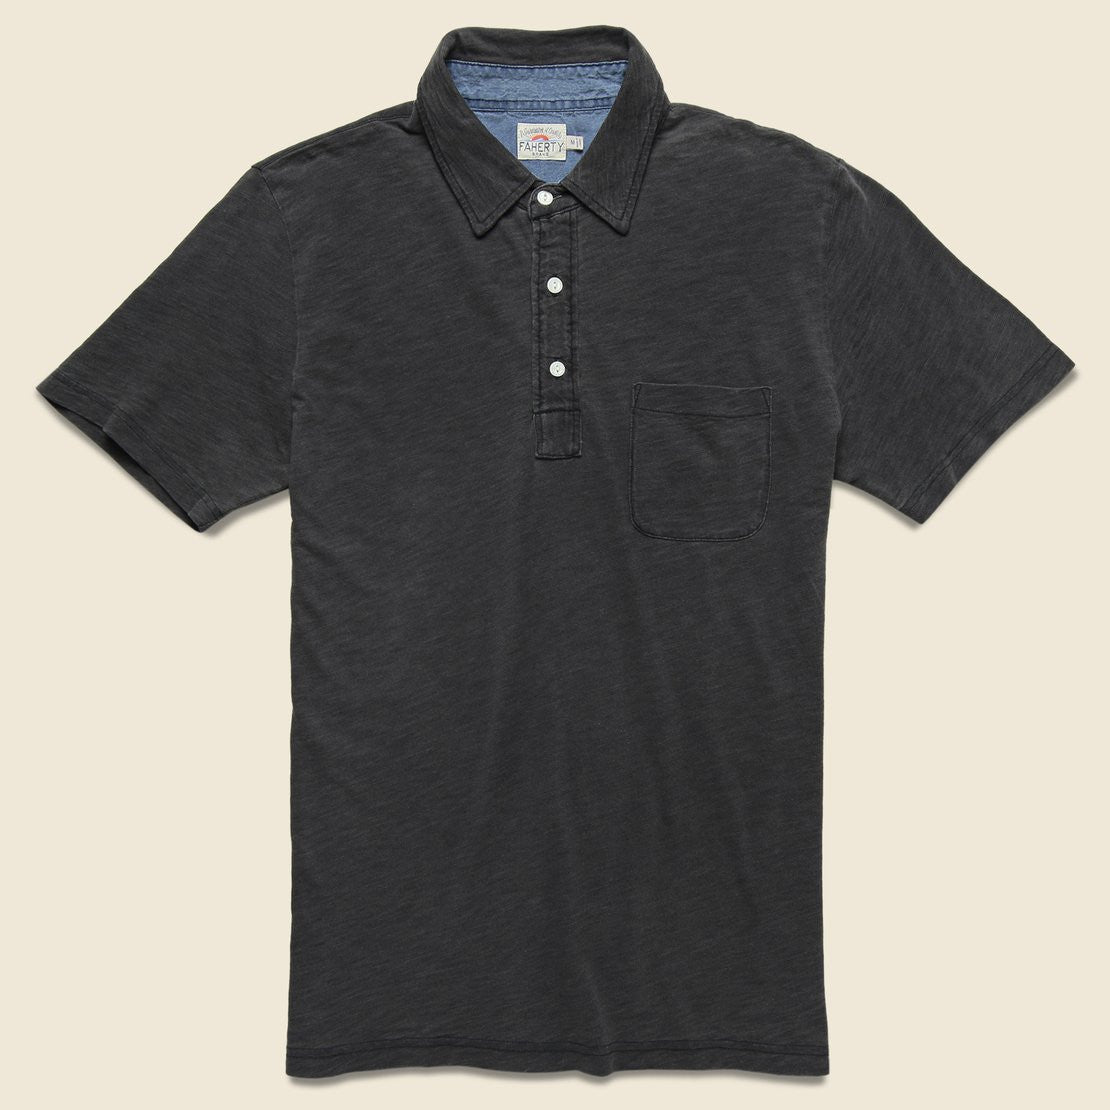 Faherty Indigo Dyed Polo Shirt - Black Wash